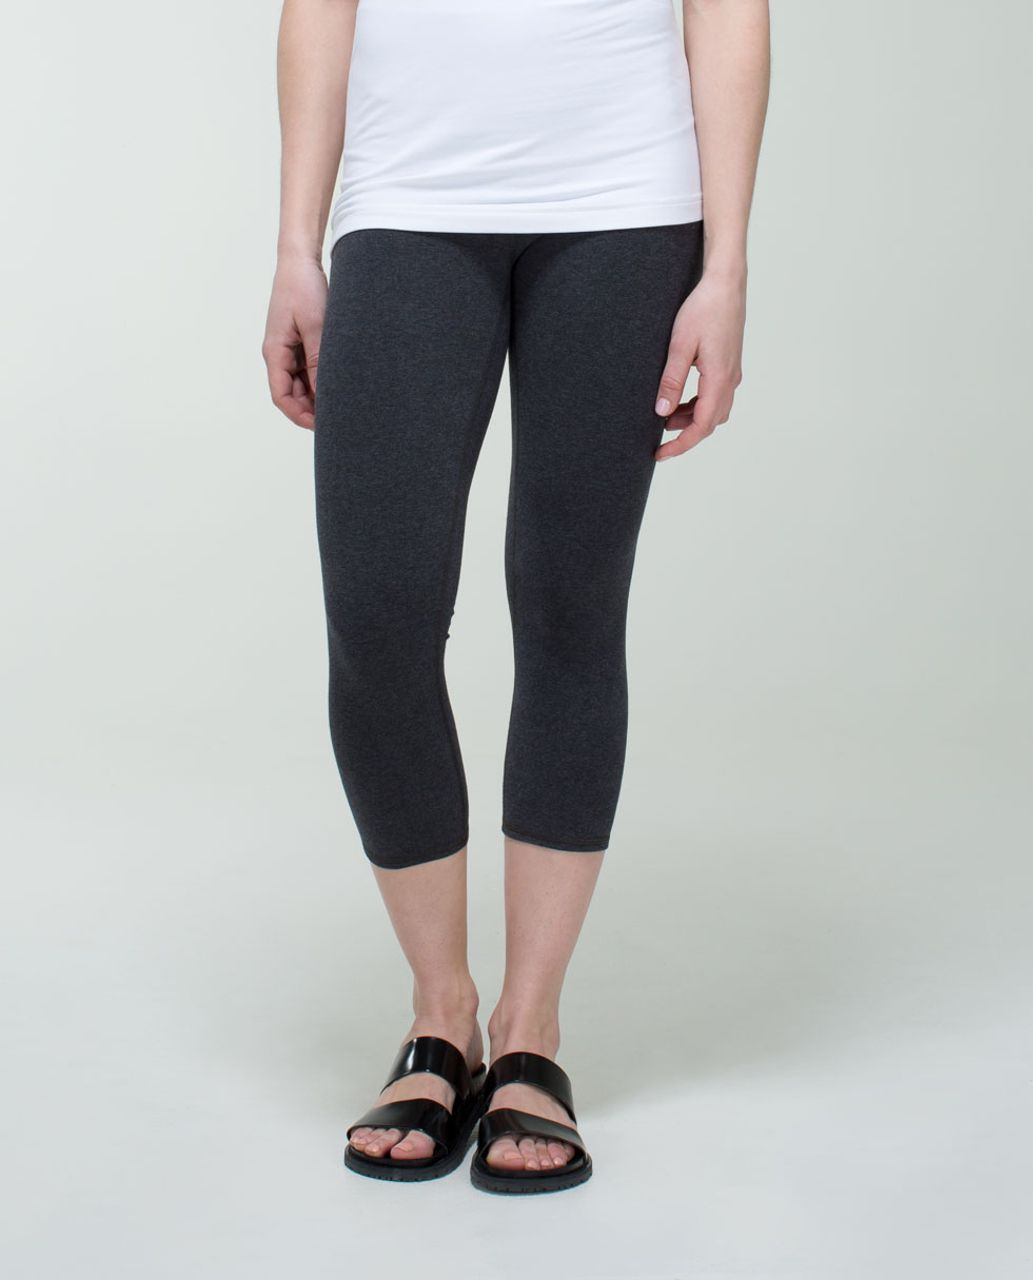 Lululemon Wunder Under Crop (Roll Down) *Cotton - Heathered Black